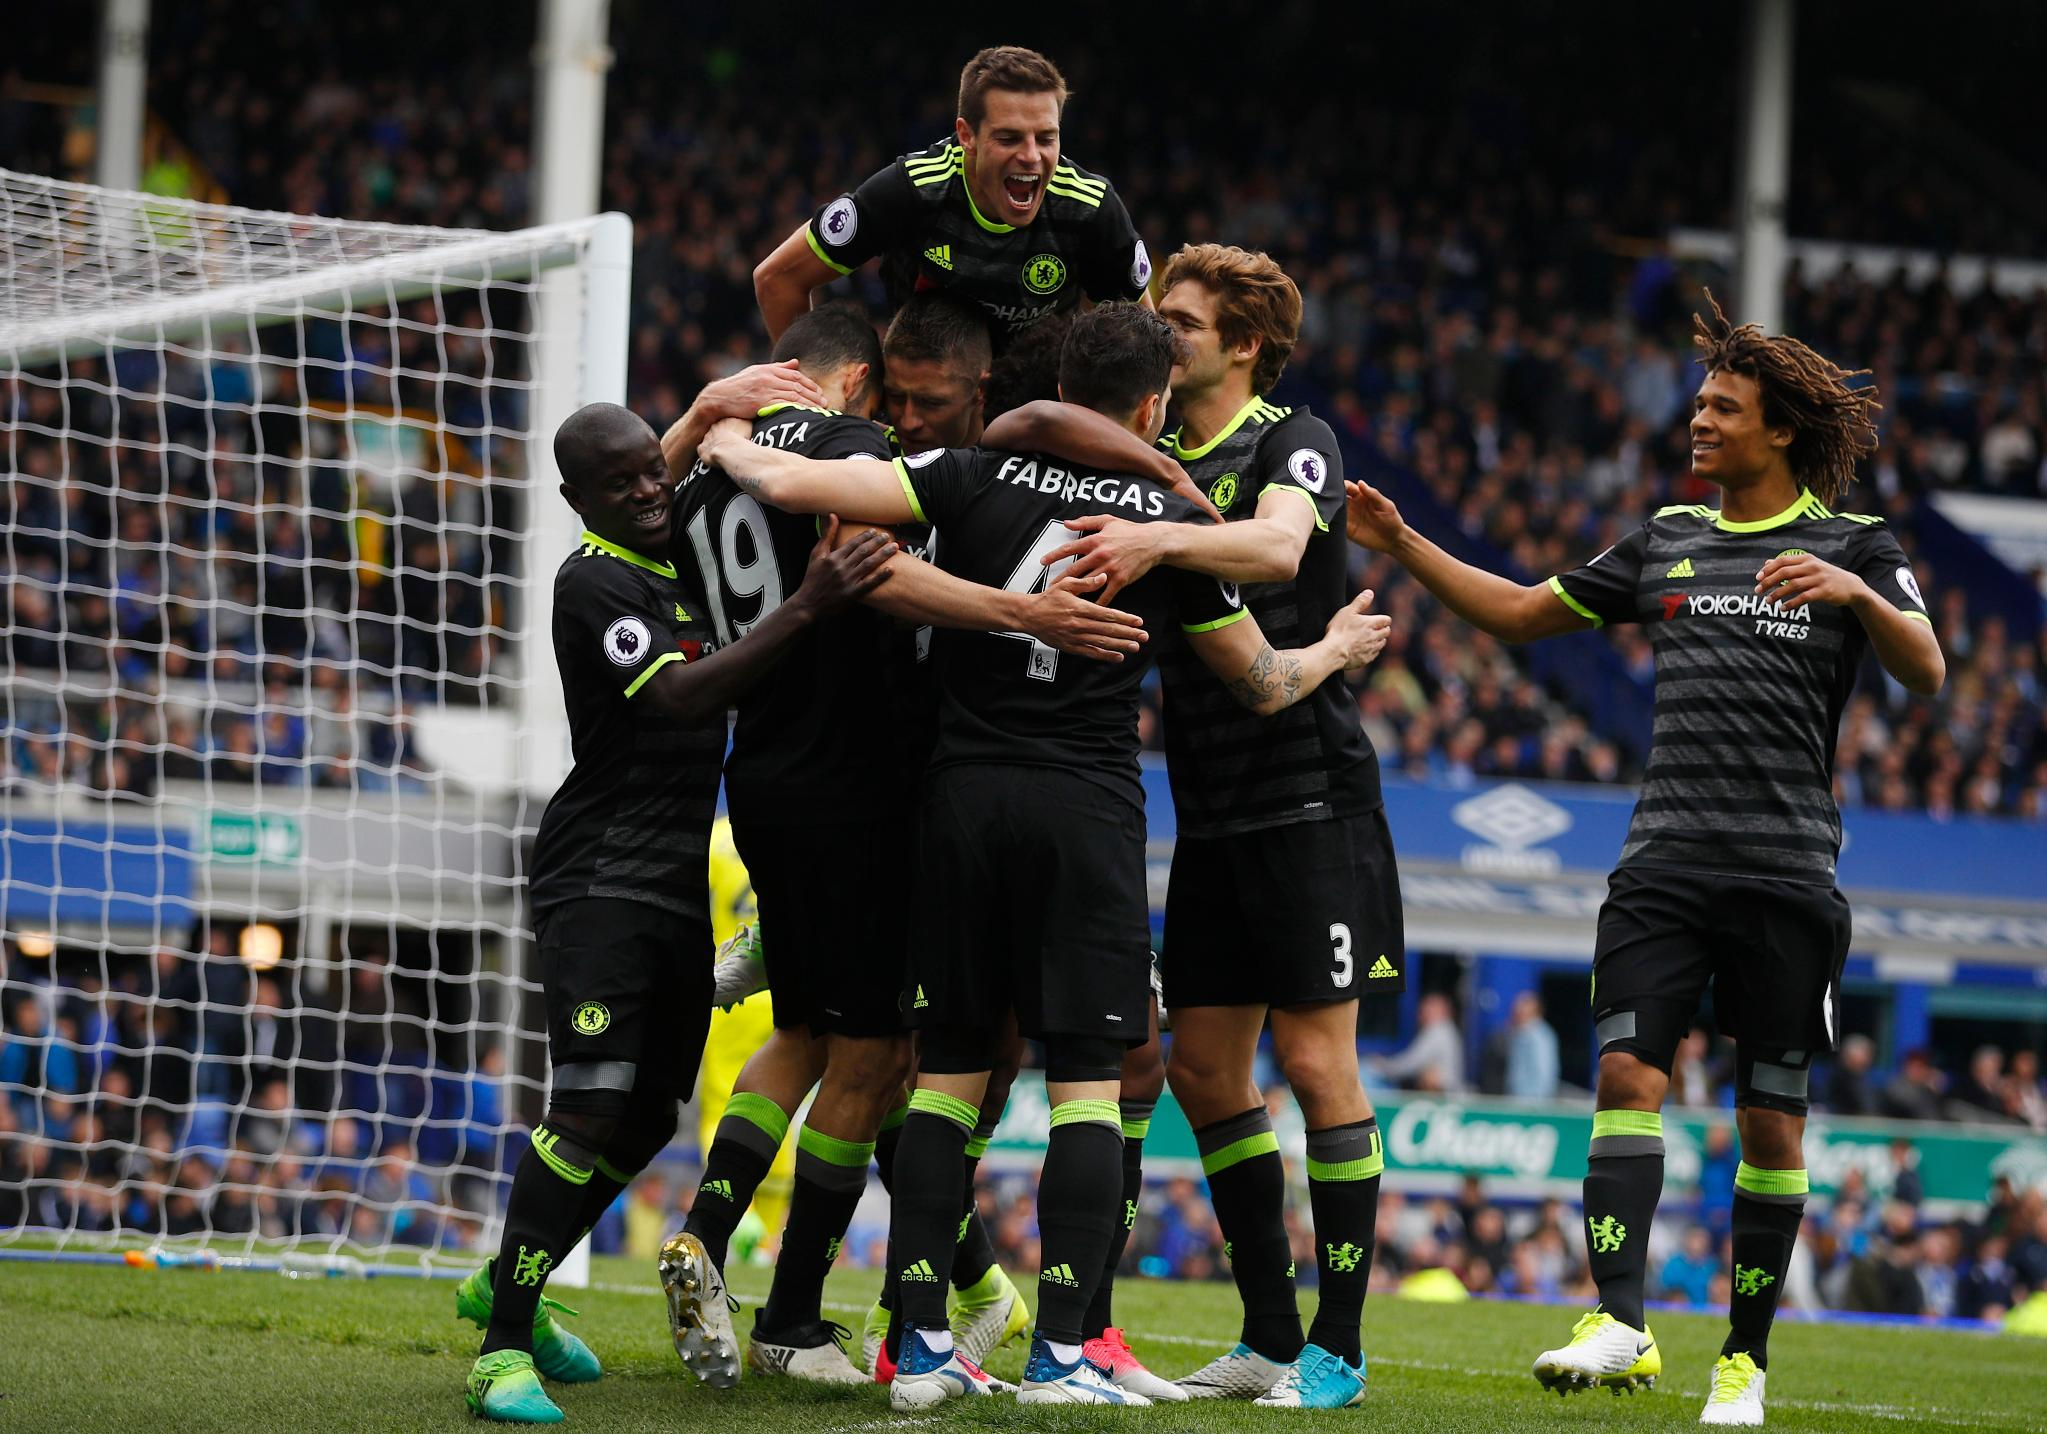 Moses Impressive As Chelsea Cruise Past Everton, Extend Lead